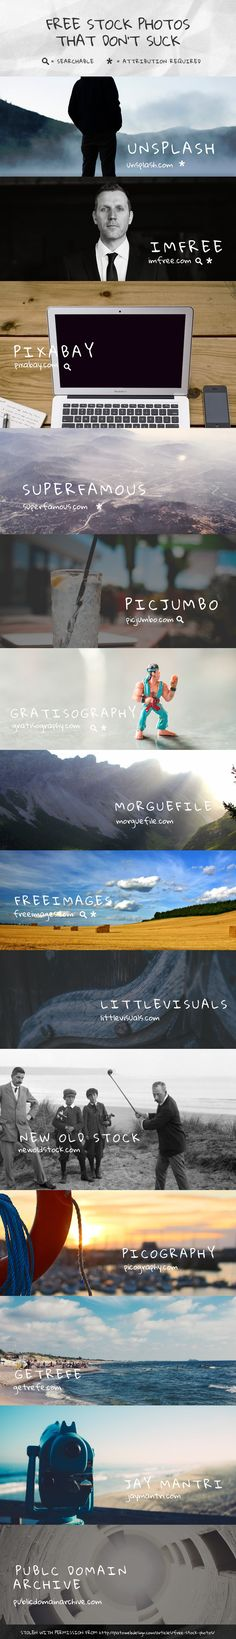 Free Stock Photography Websites Infographic Chart | Freebies for Blogging | Blogger Resources | Blog & Business Tips & Tricks | Photo Sites | Stock Clipart & Images | Web Design Help